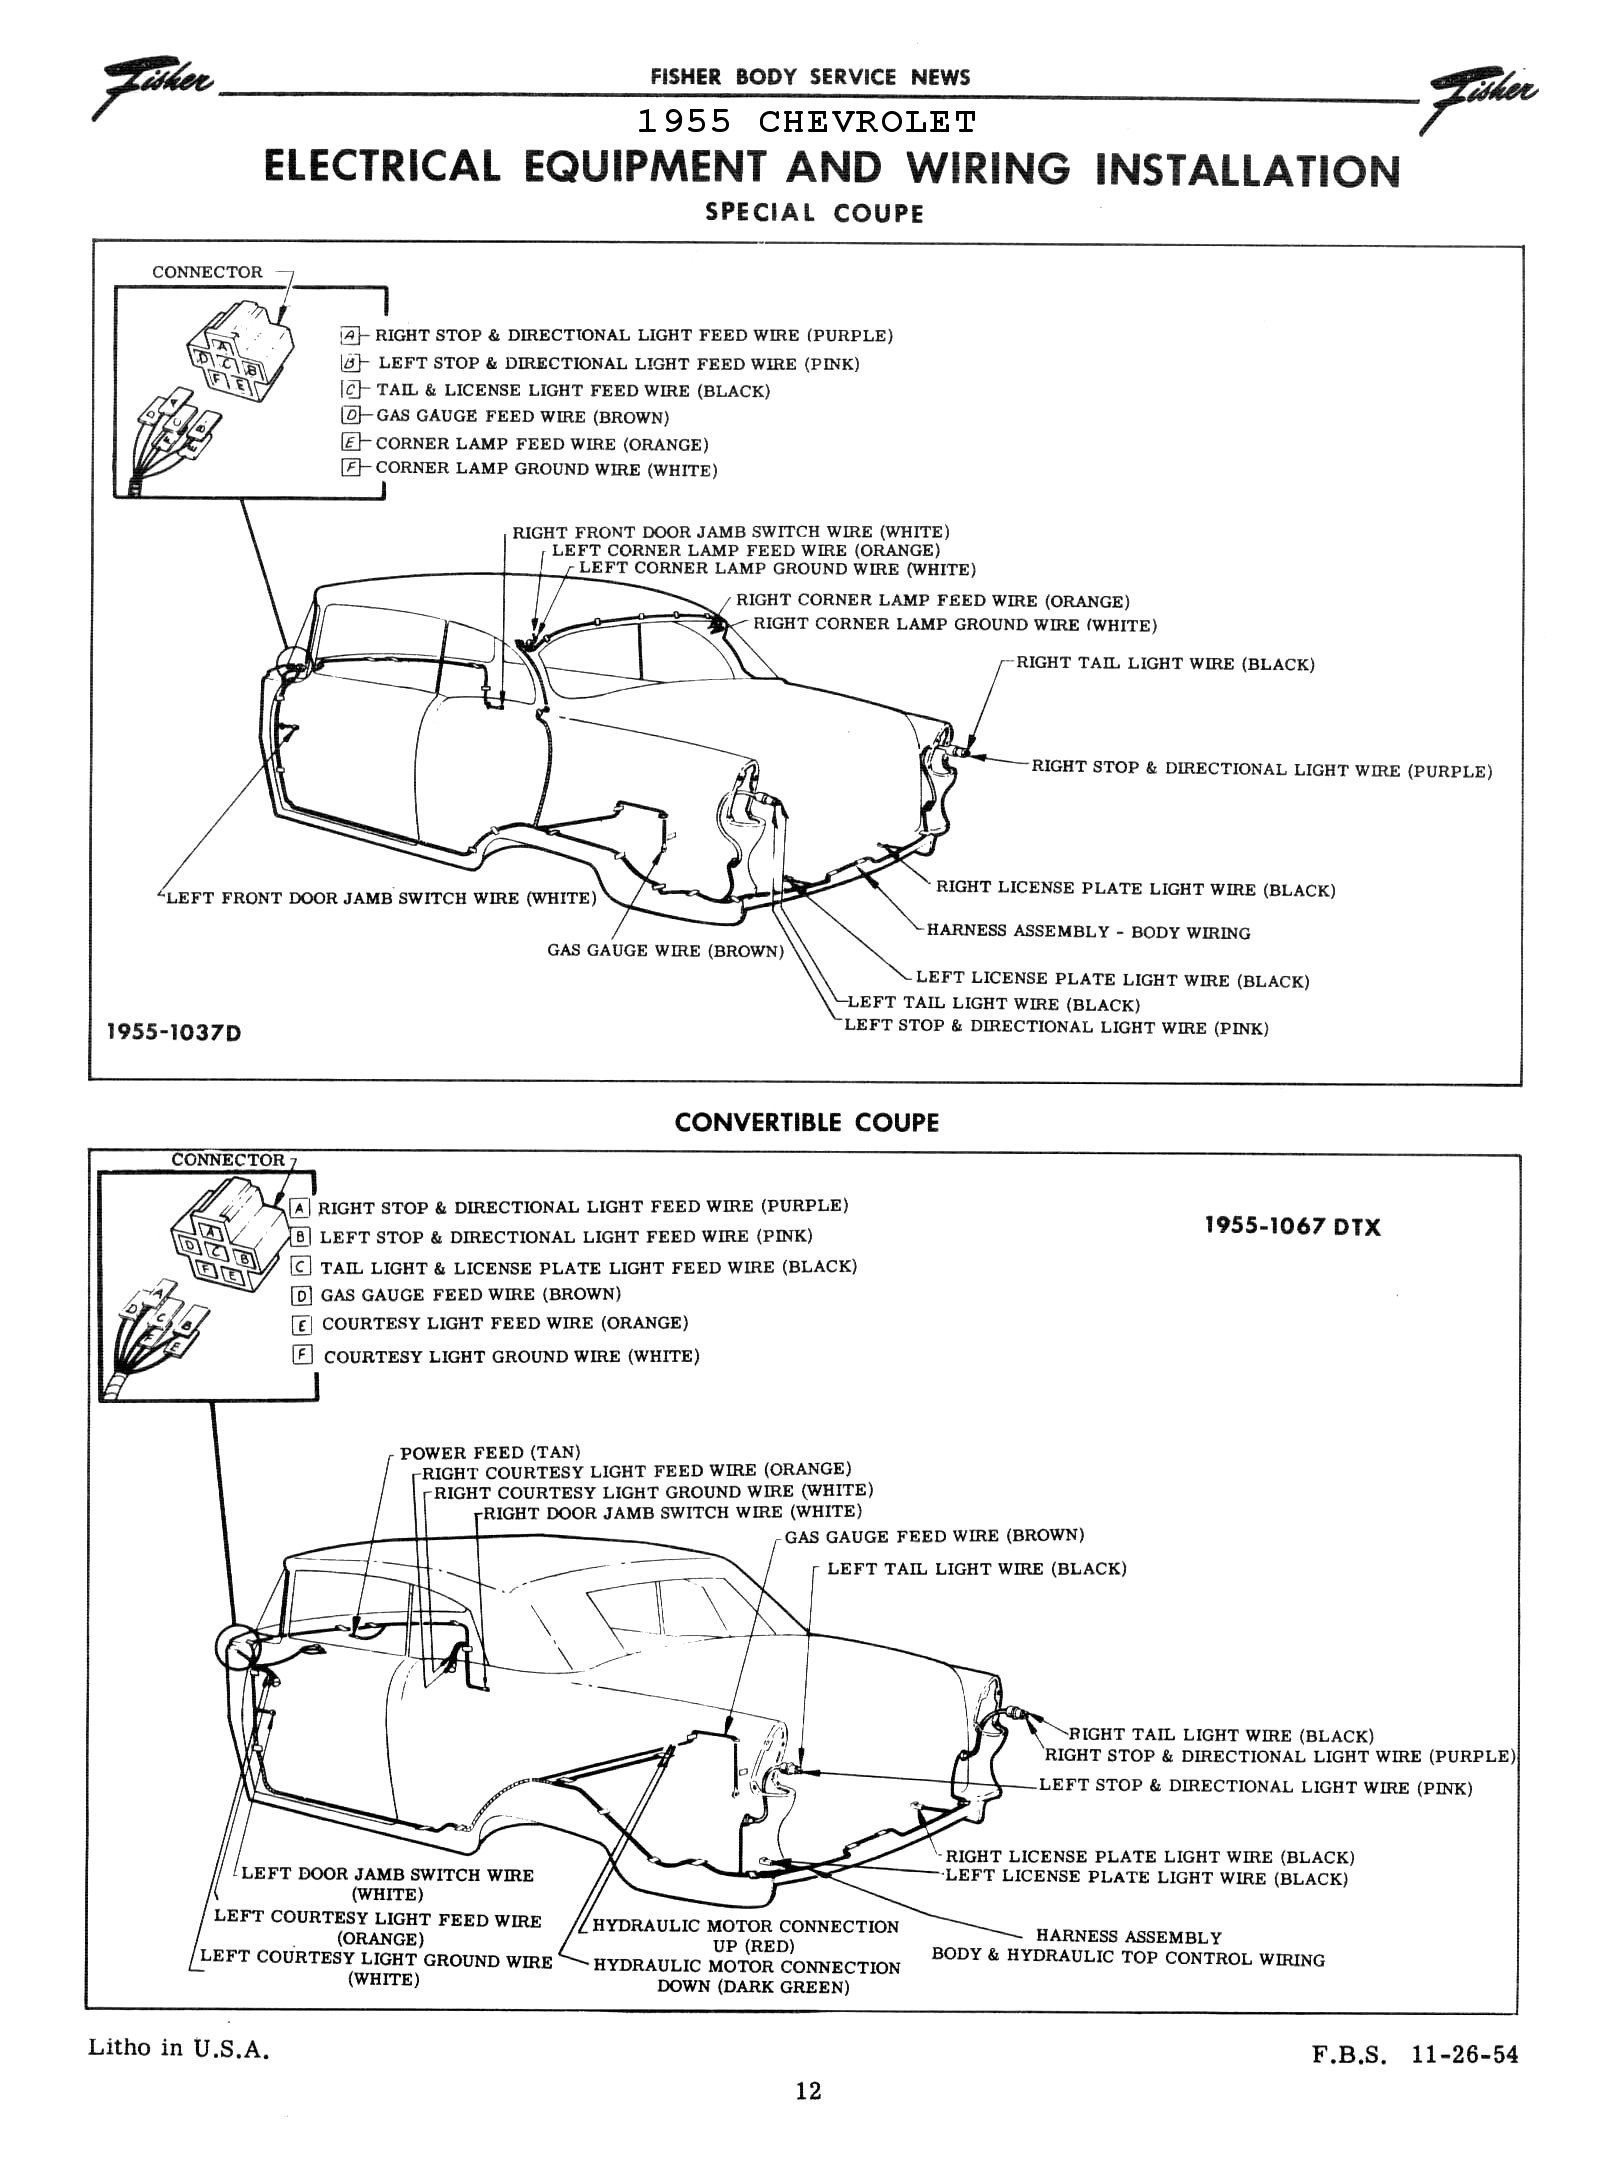 57 chevy wiring diagram wiring diagram and schematic design wiring looms trifive 1955 chevy 1956 1957 forum